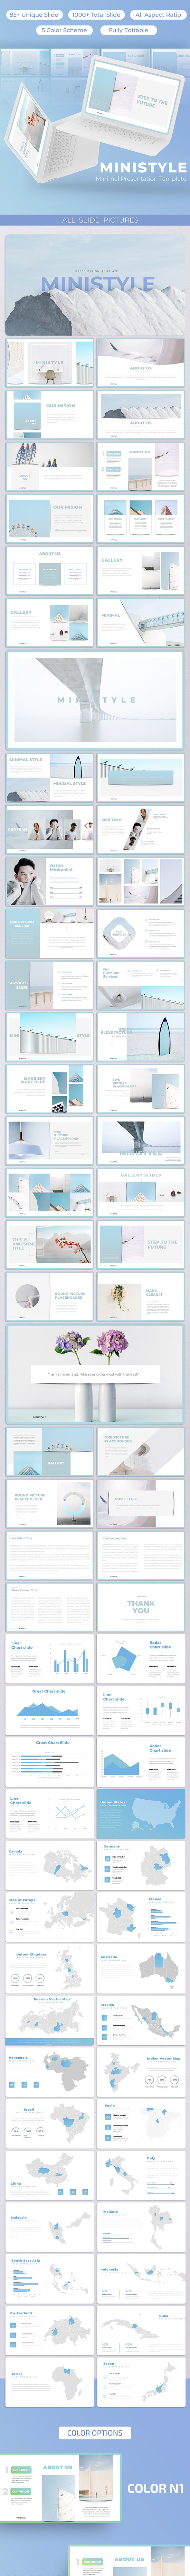 Ministyle - Keynote Template - Business Keynote Templates